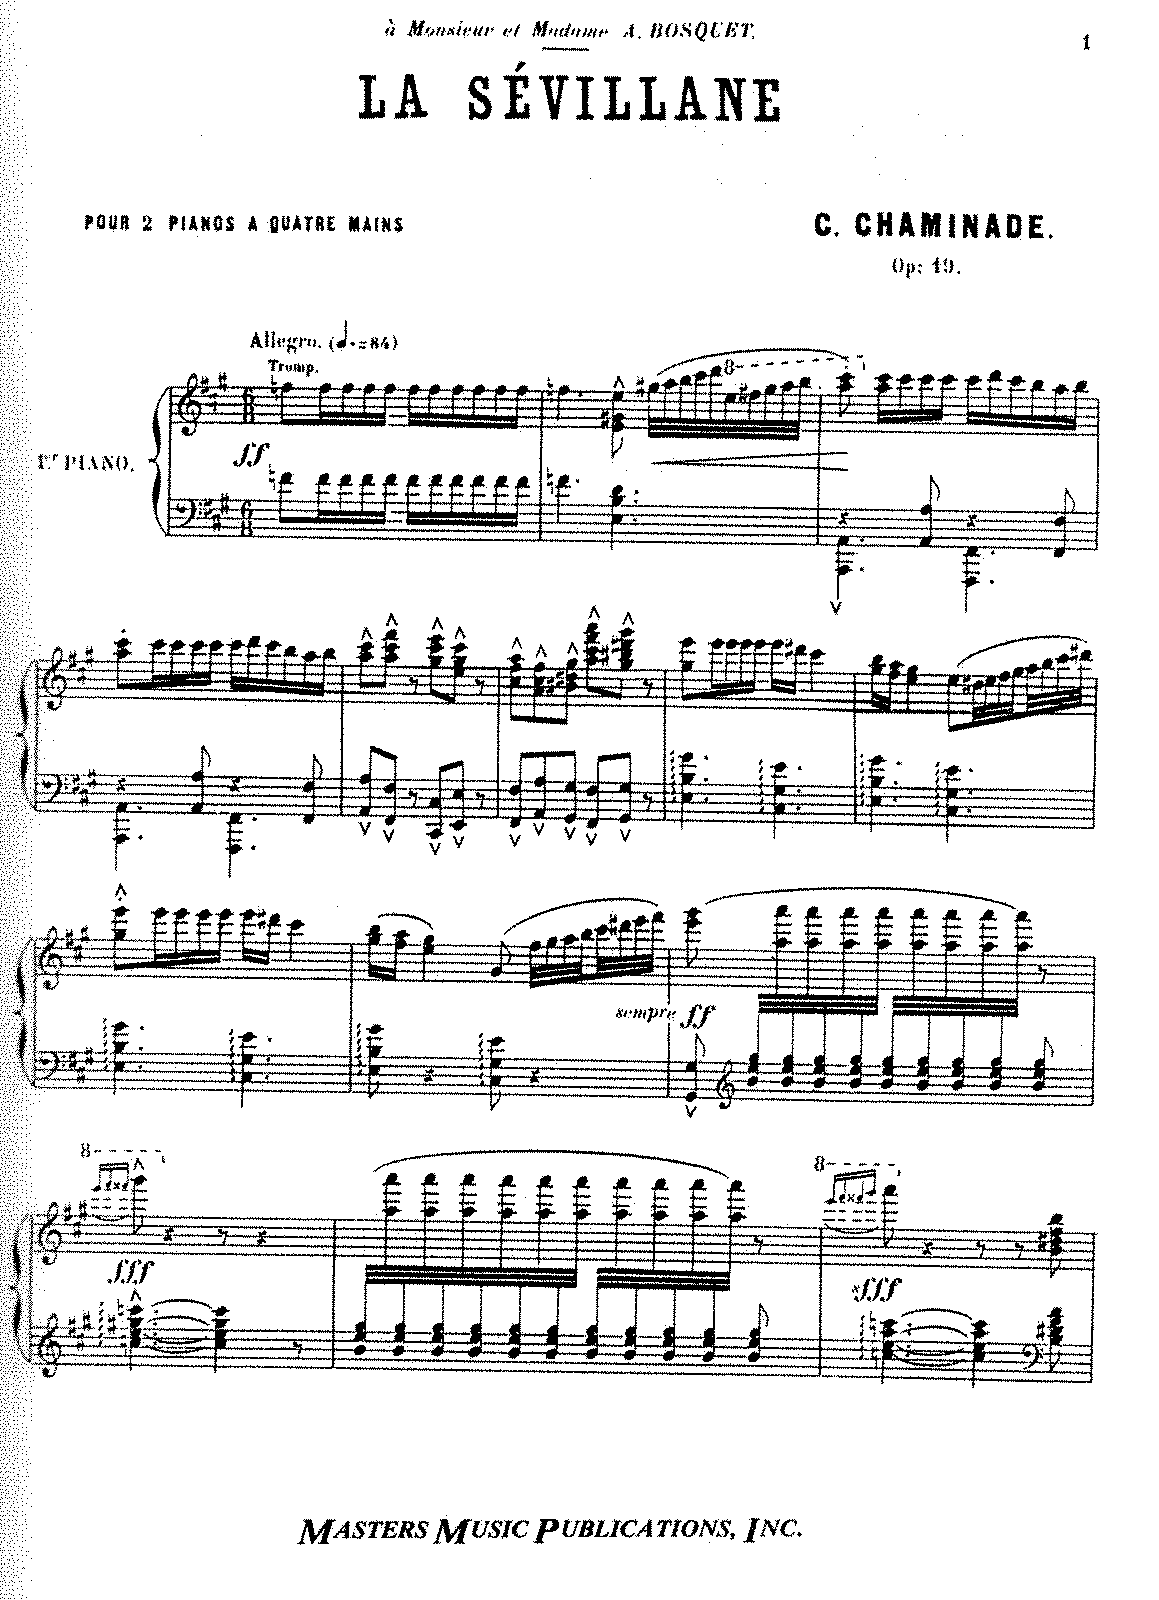 PMLP67453-Chaminade - Op. 19 La Sevillane(for 2 pianos, 4 hands).pdf